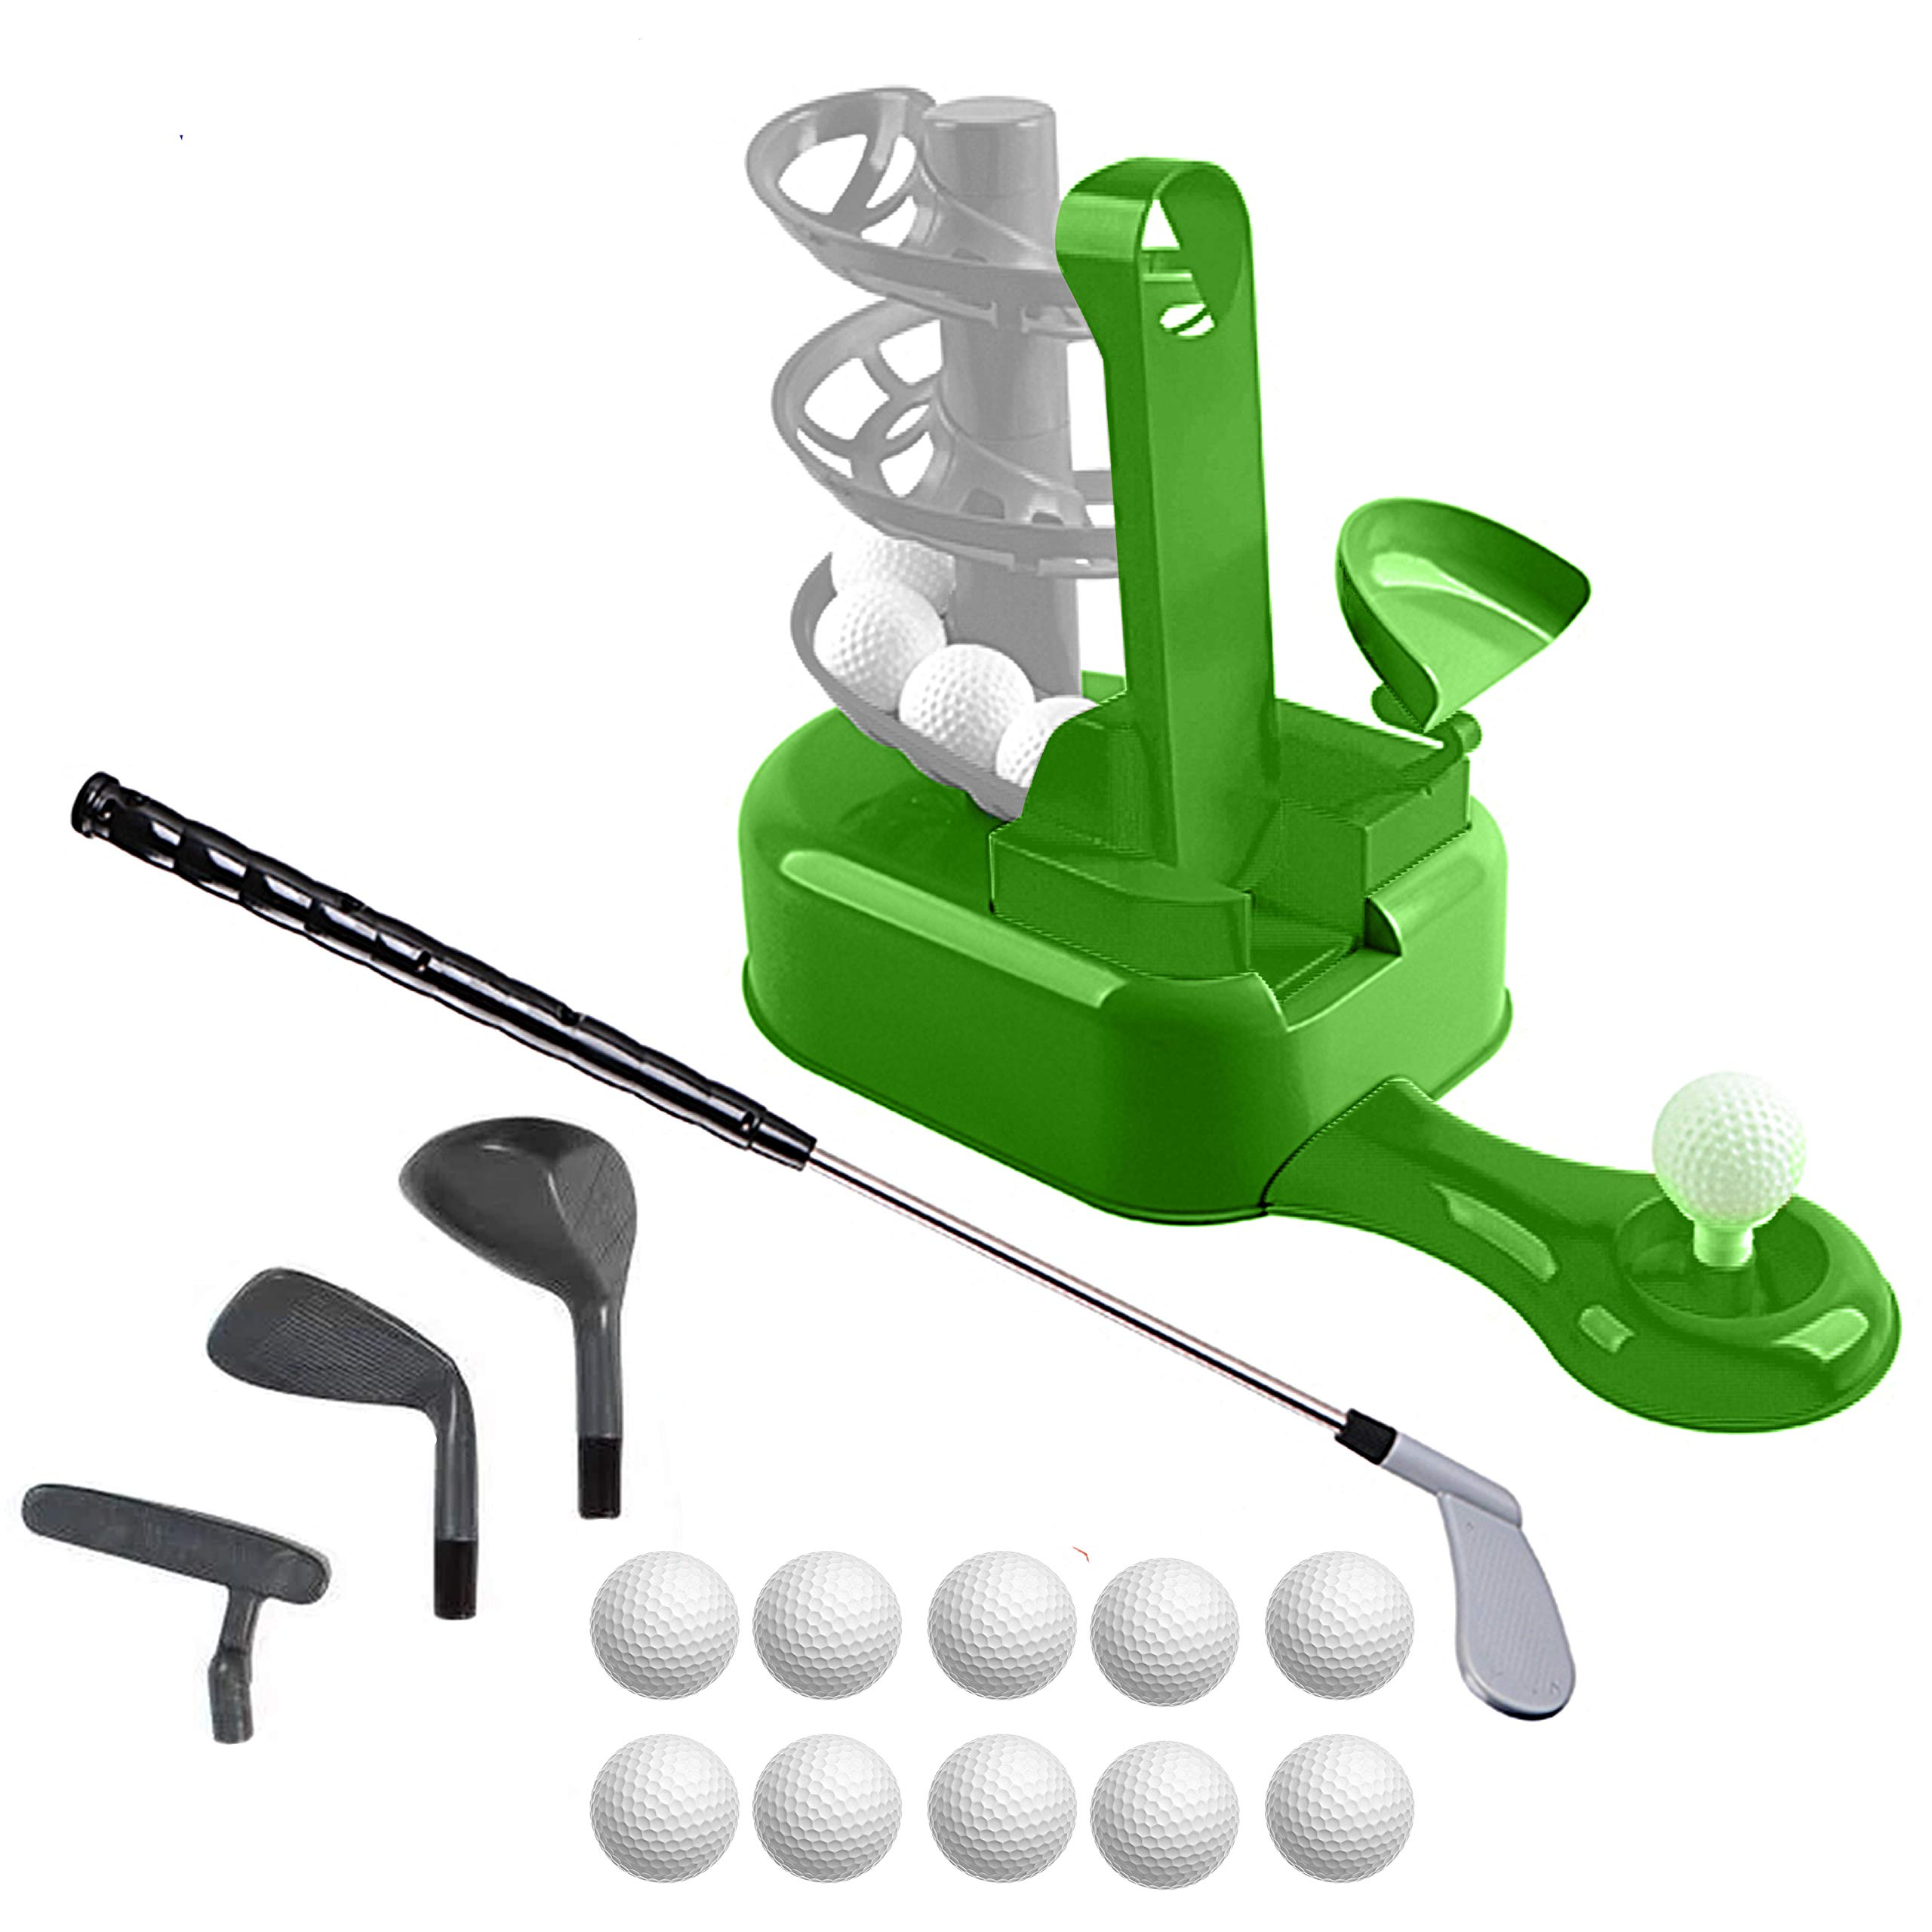 Sport Games Golf Toy Set, Kids Golf Clubs, Kids Golf Set, Toddler Golf Set, Kids Sports Toys, Toddler Sports Toys, Outdoor Exercise Toys for Kids, Boys, Girls, Includes Toy Golf Clubs and More by Sport Games